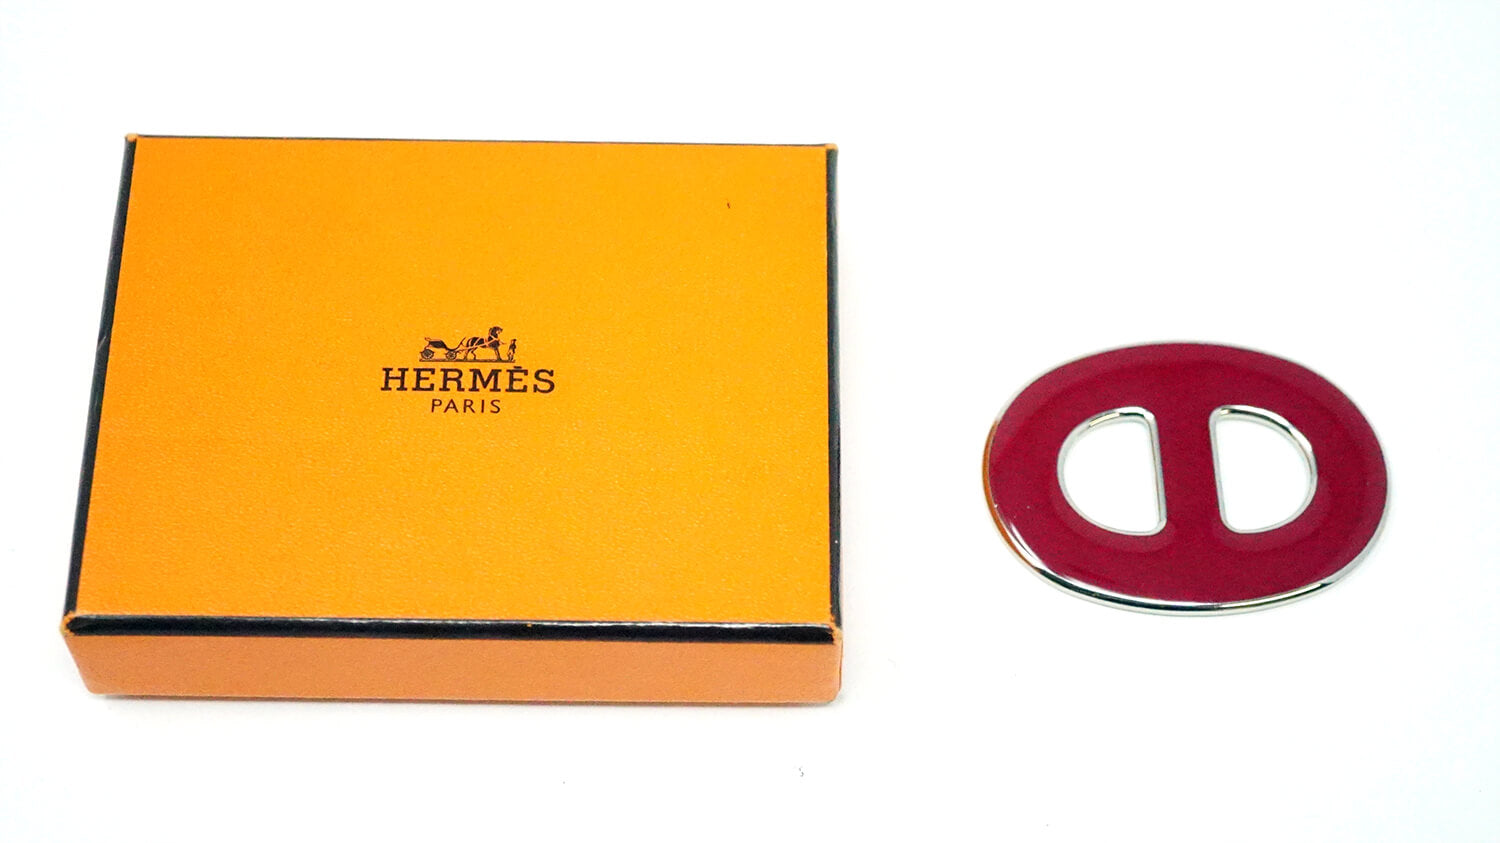 Hermes Paris Red Enamel Scarf Ring